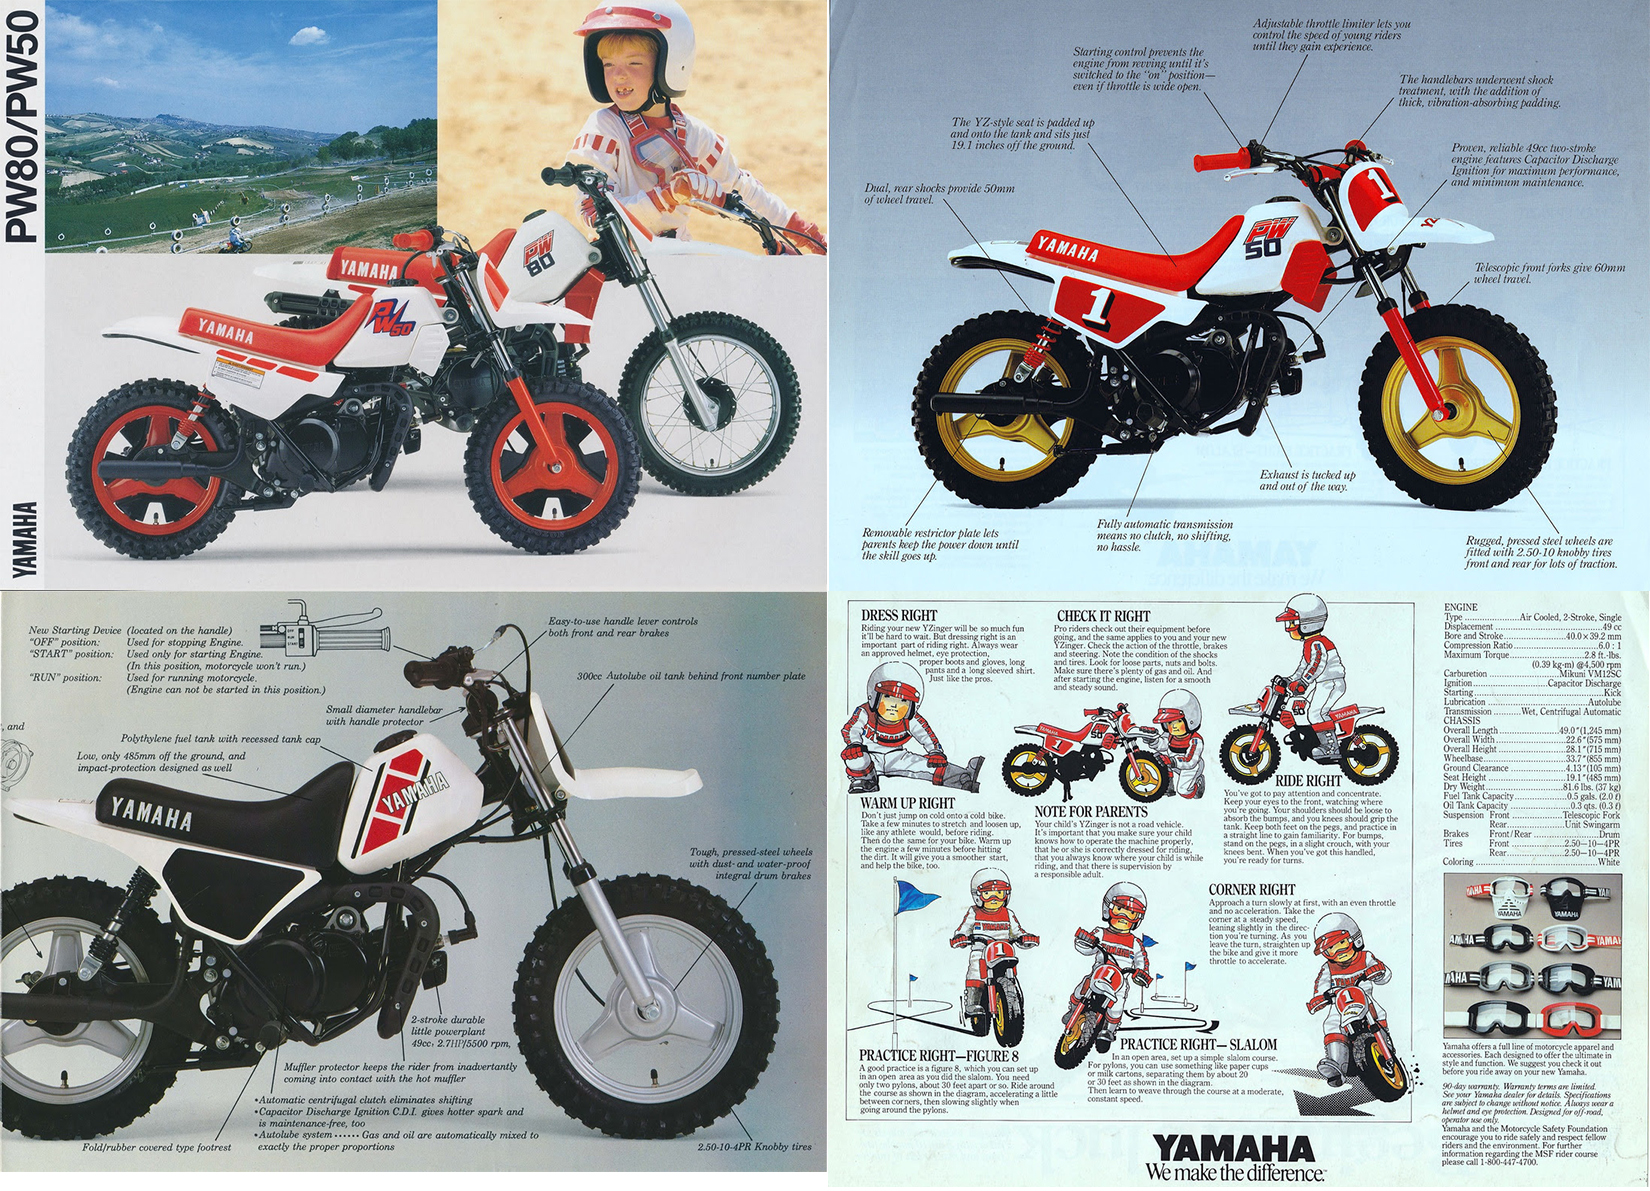 Yamaha 50cc Dirt Bike Engine Diagram | Wiring Diagram